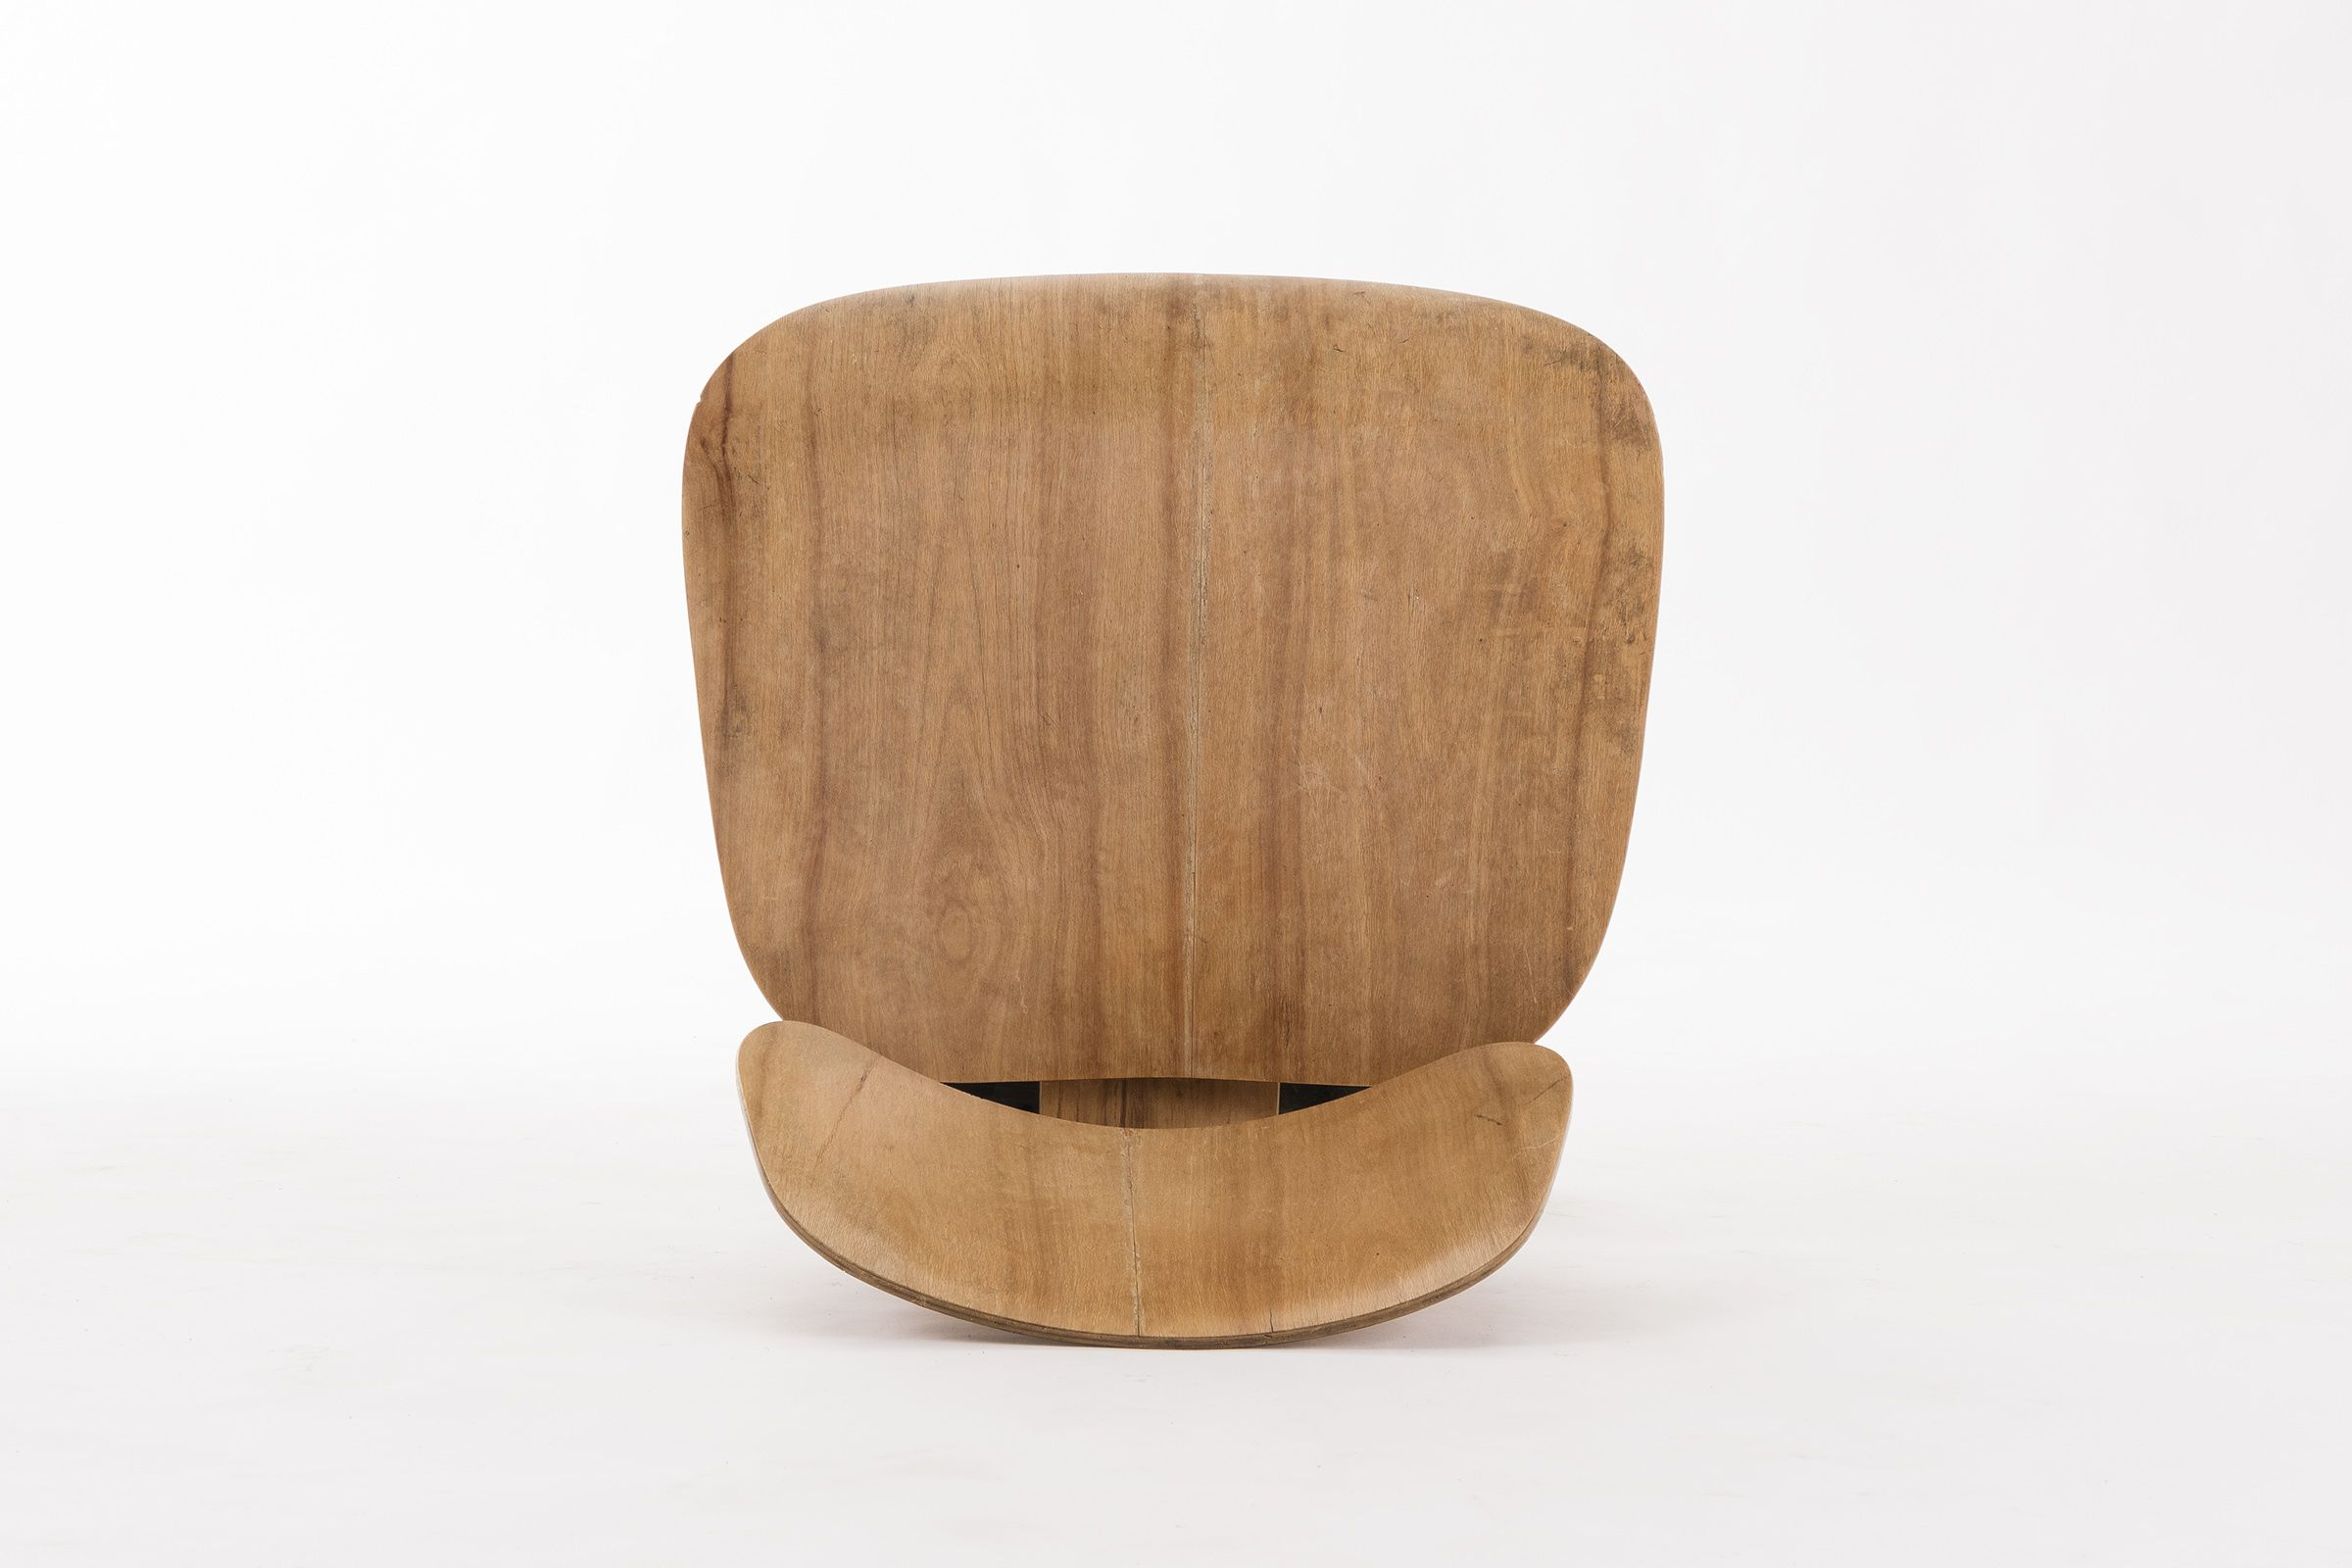 Wooden Chair Top View Png Google 検索 Wooden Chair Fabric Kitchen Chairs Reupholster Chair